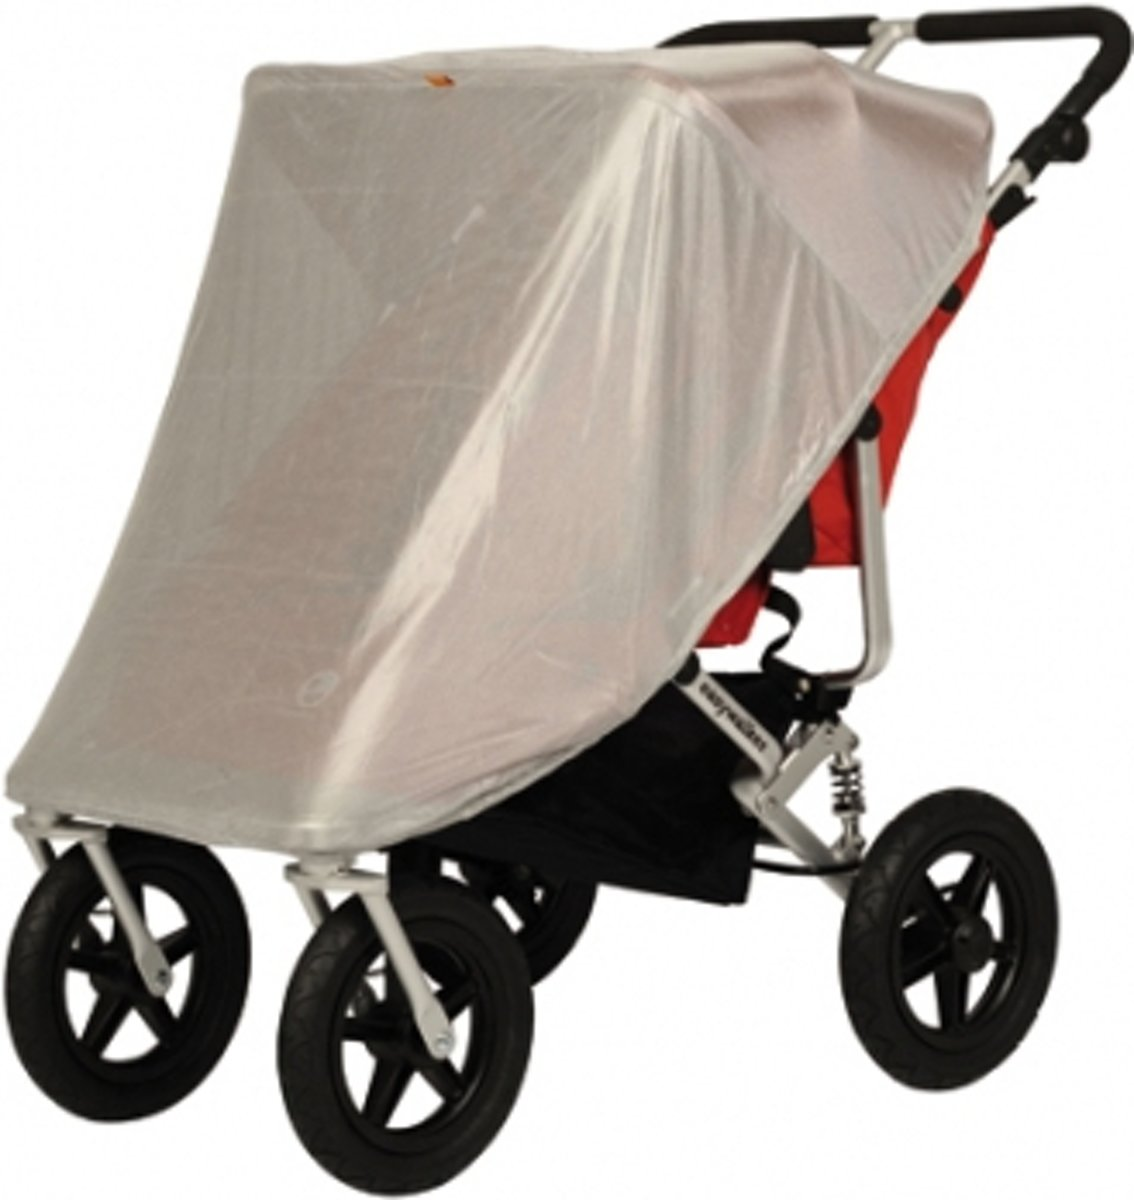 Kinderwagen Easywalker Duo Bol Easywalker Duo Base Plus Kersenrood